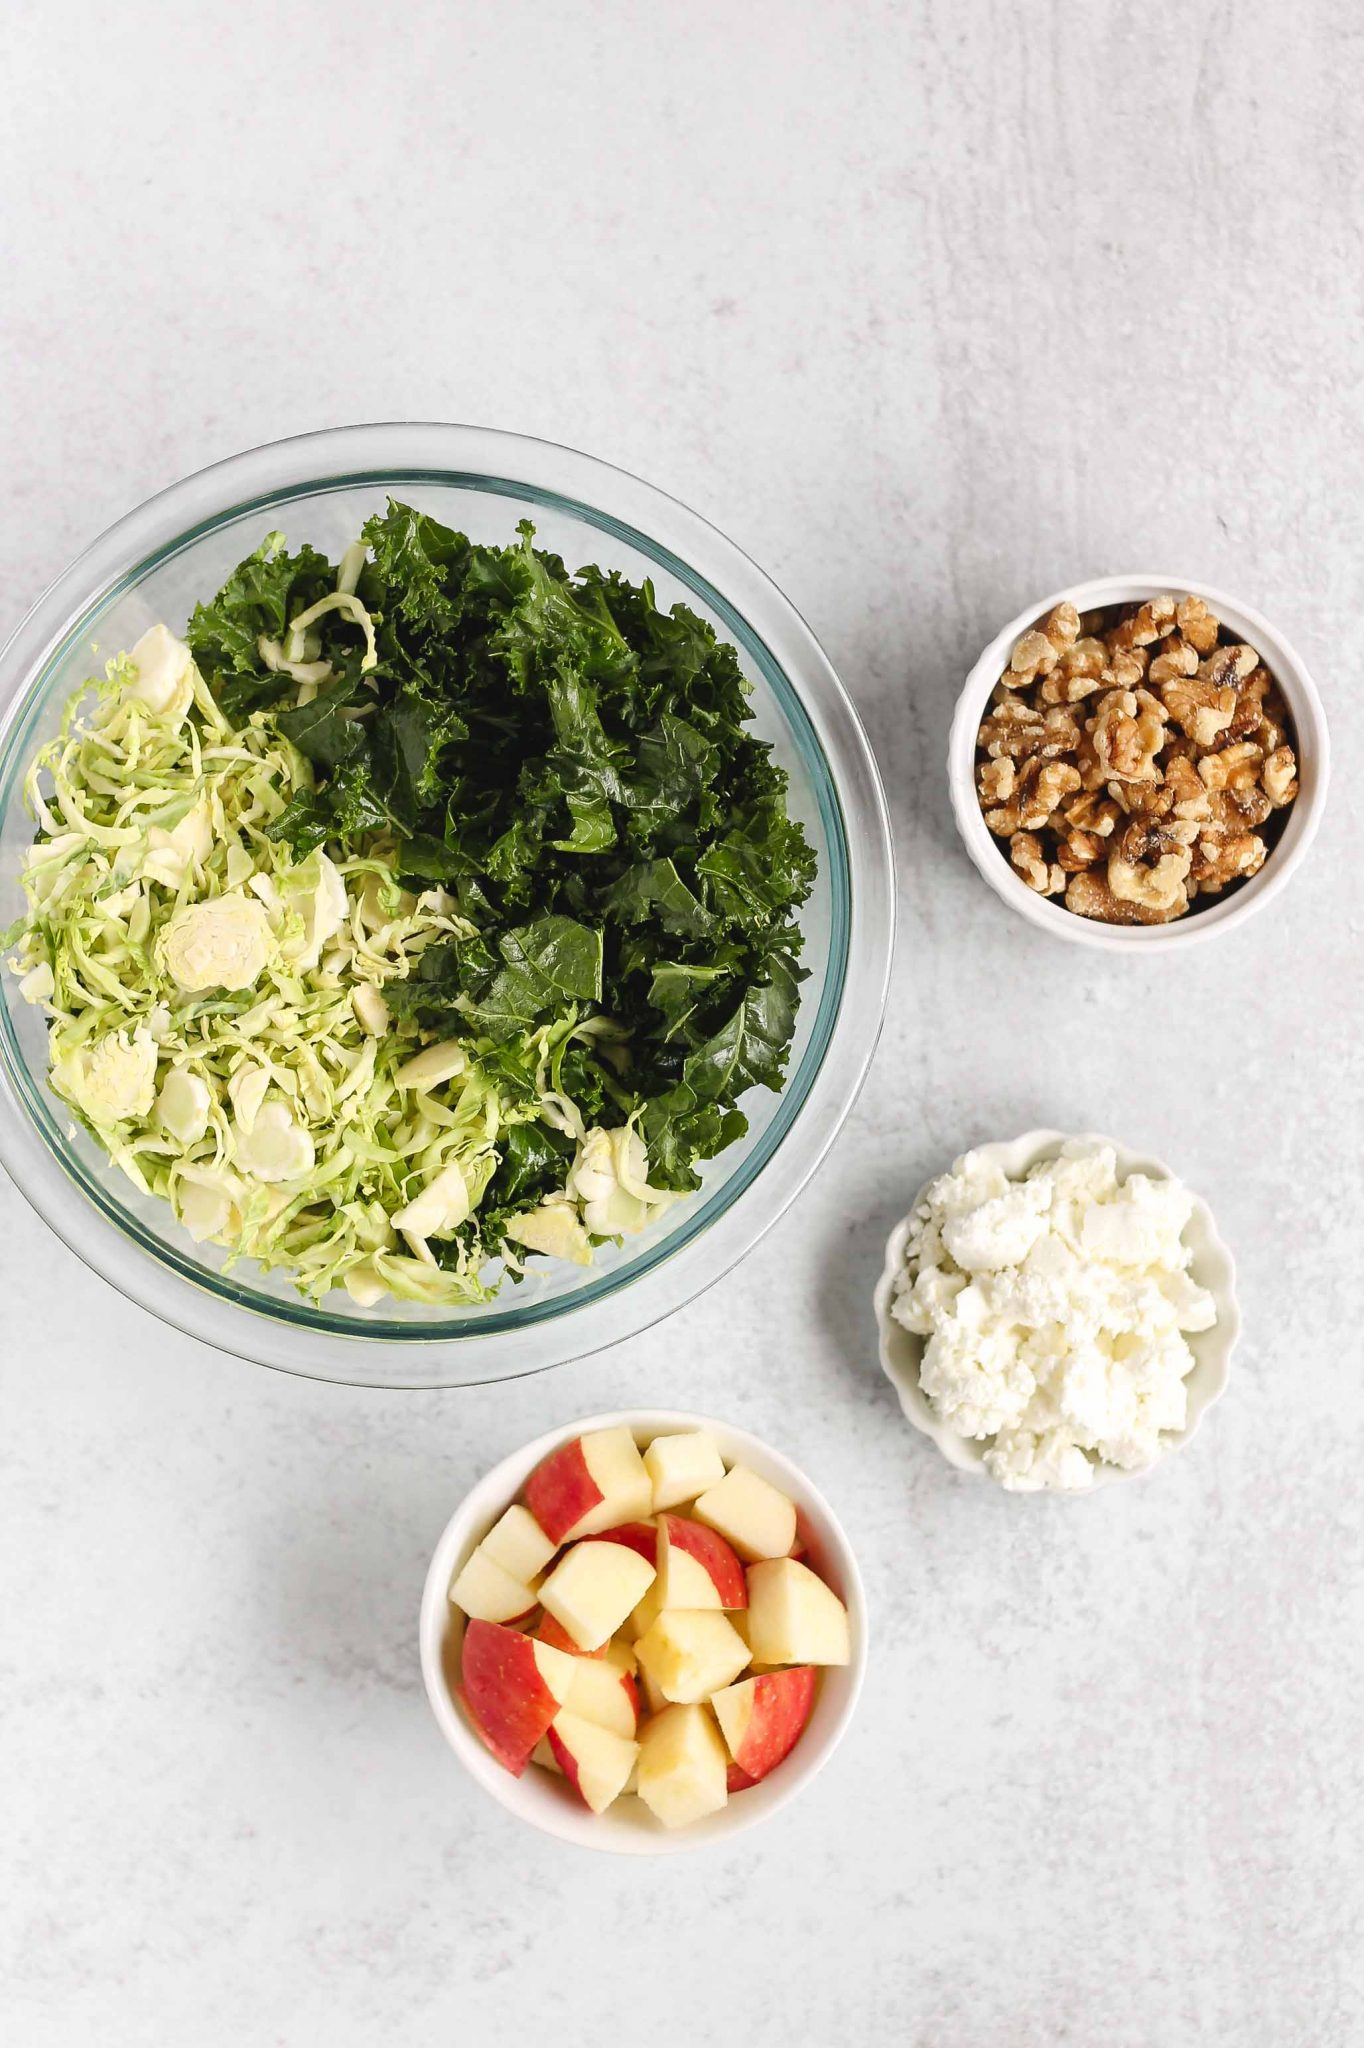 separate bowls filled with apples, goat cheese, walnuts, and Brussels sprouts and kale